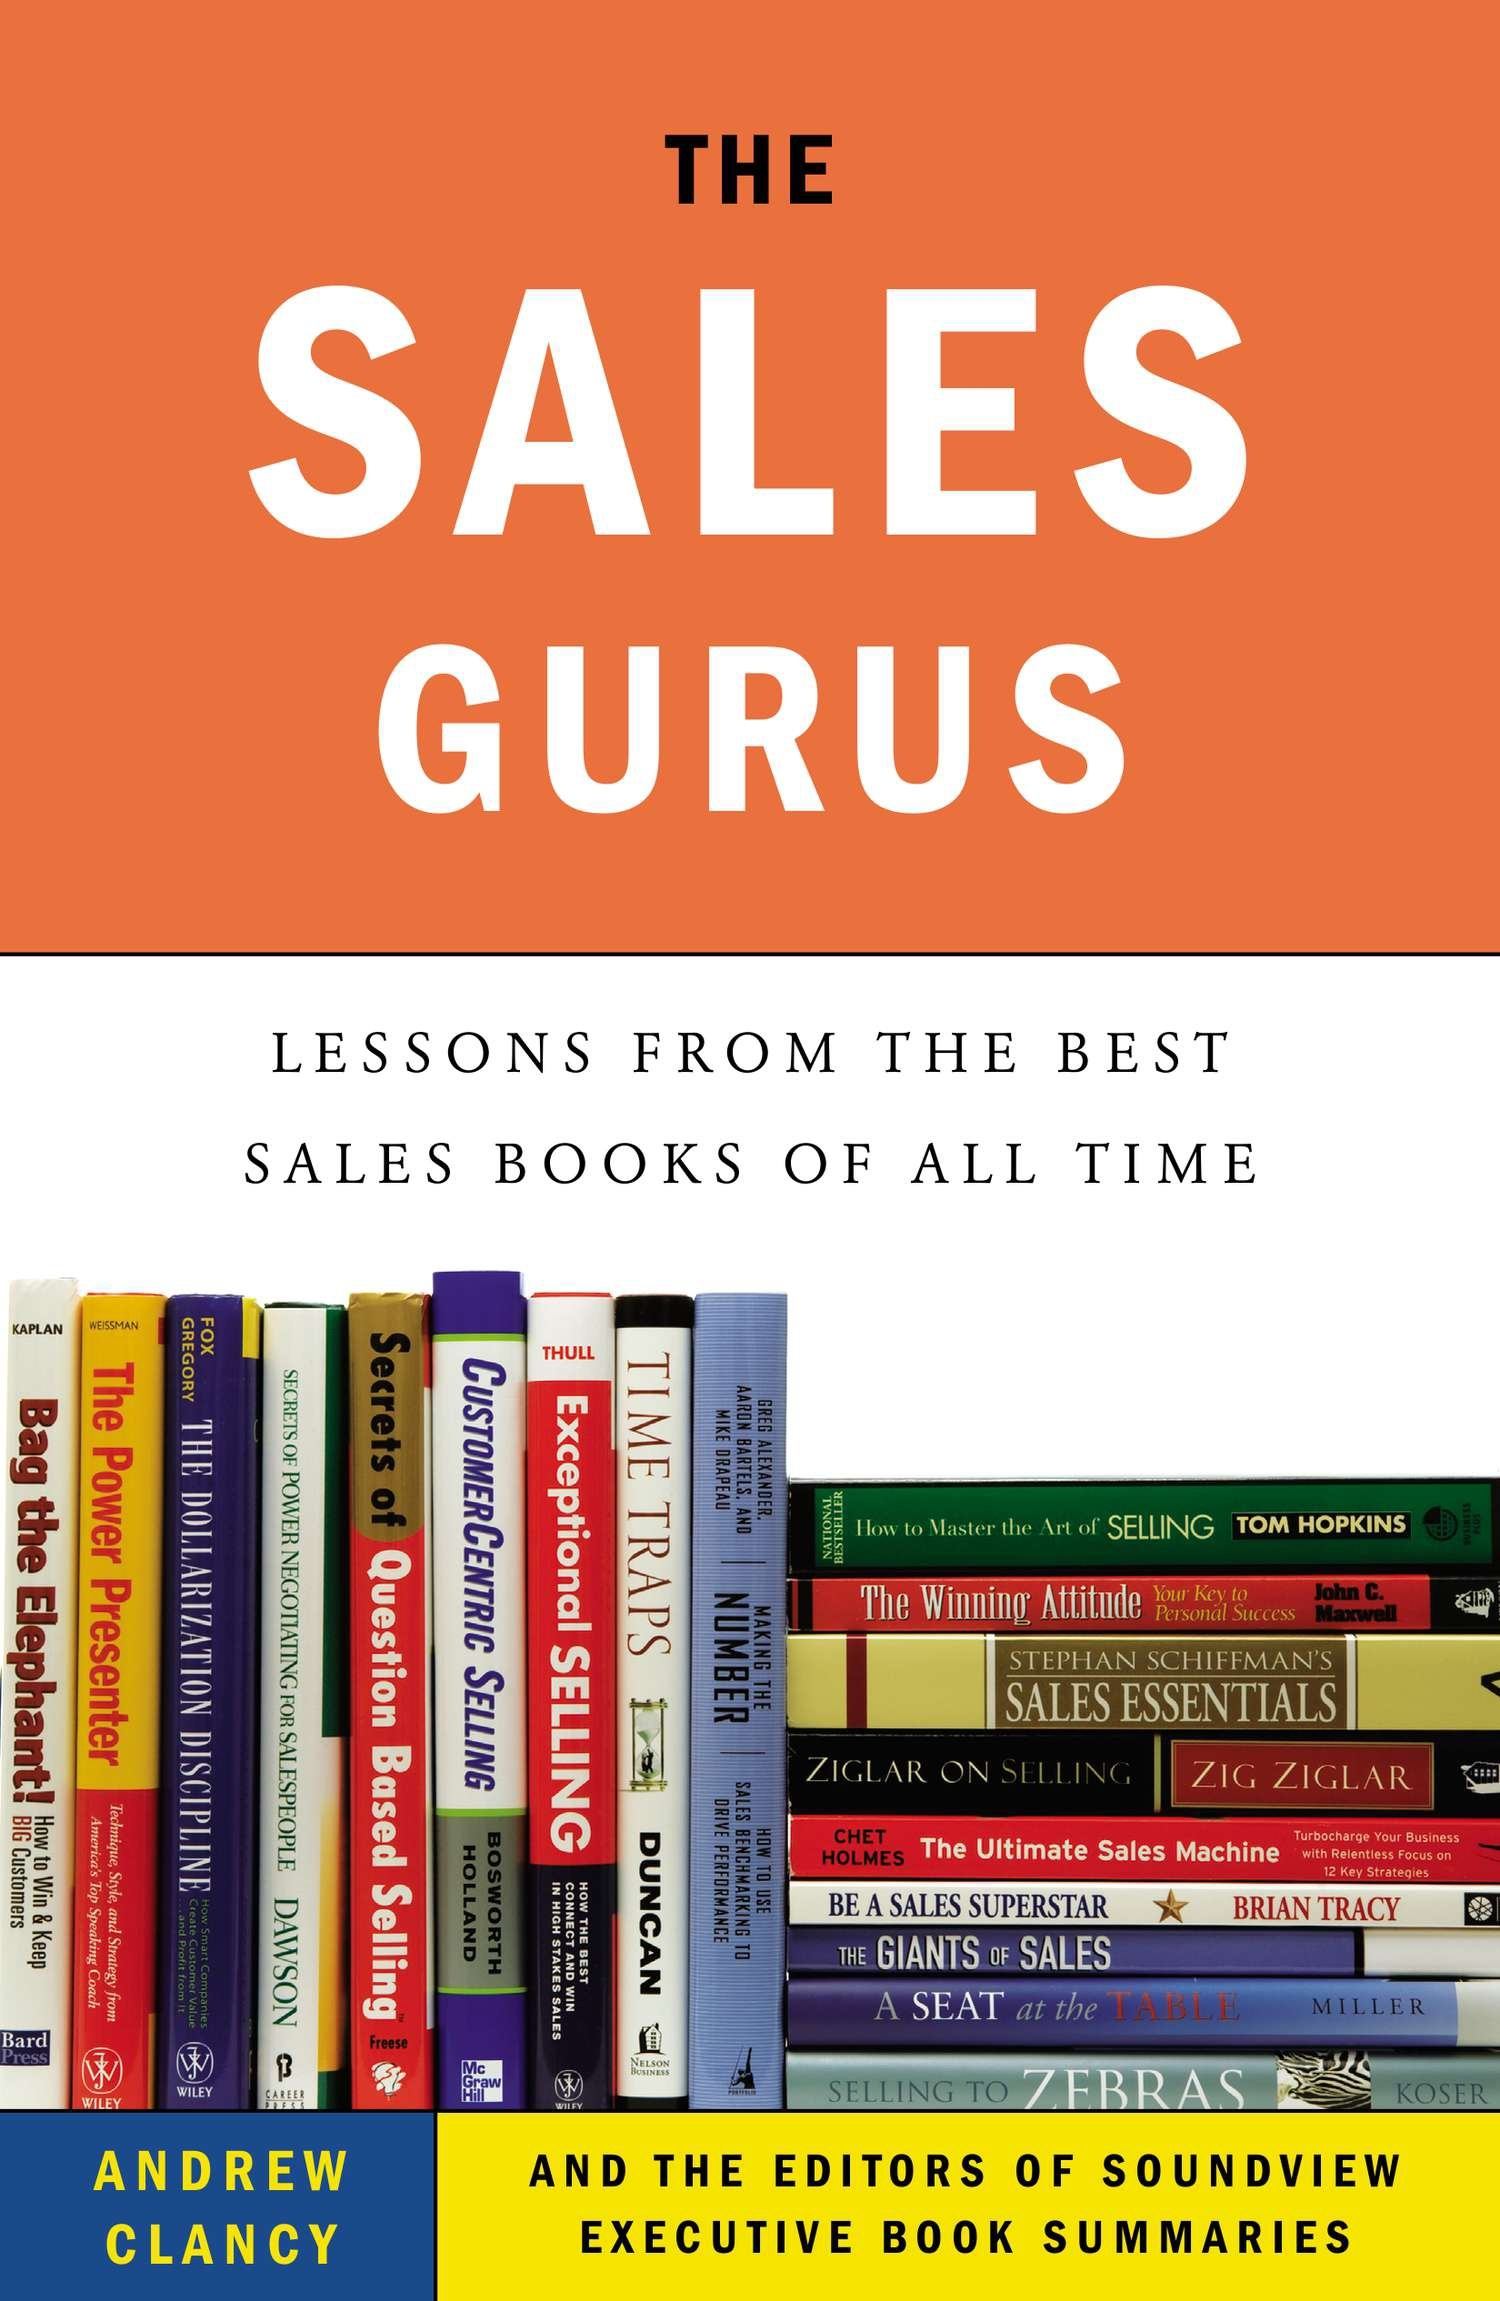 Best Book Covers Of All Time ~ The sales gurus lessons from best books of all